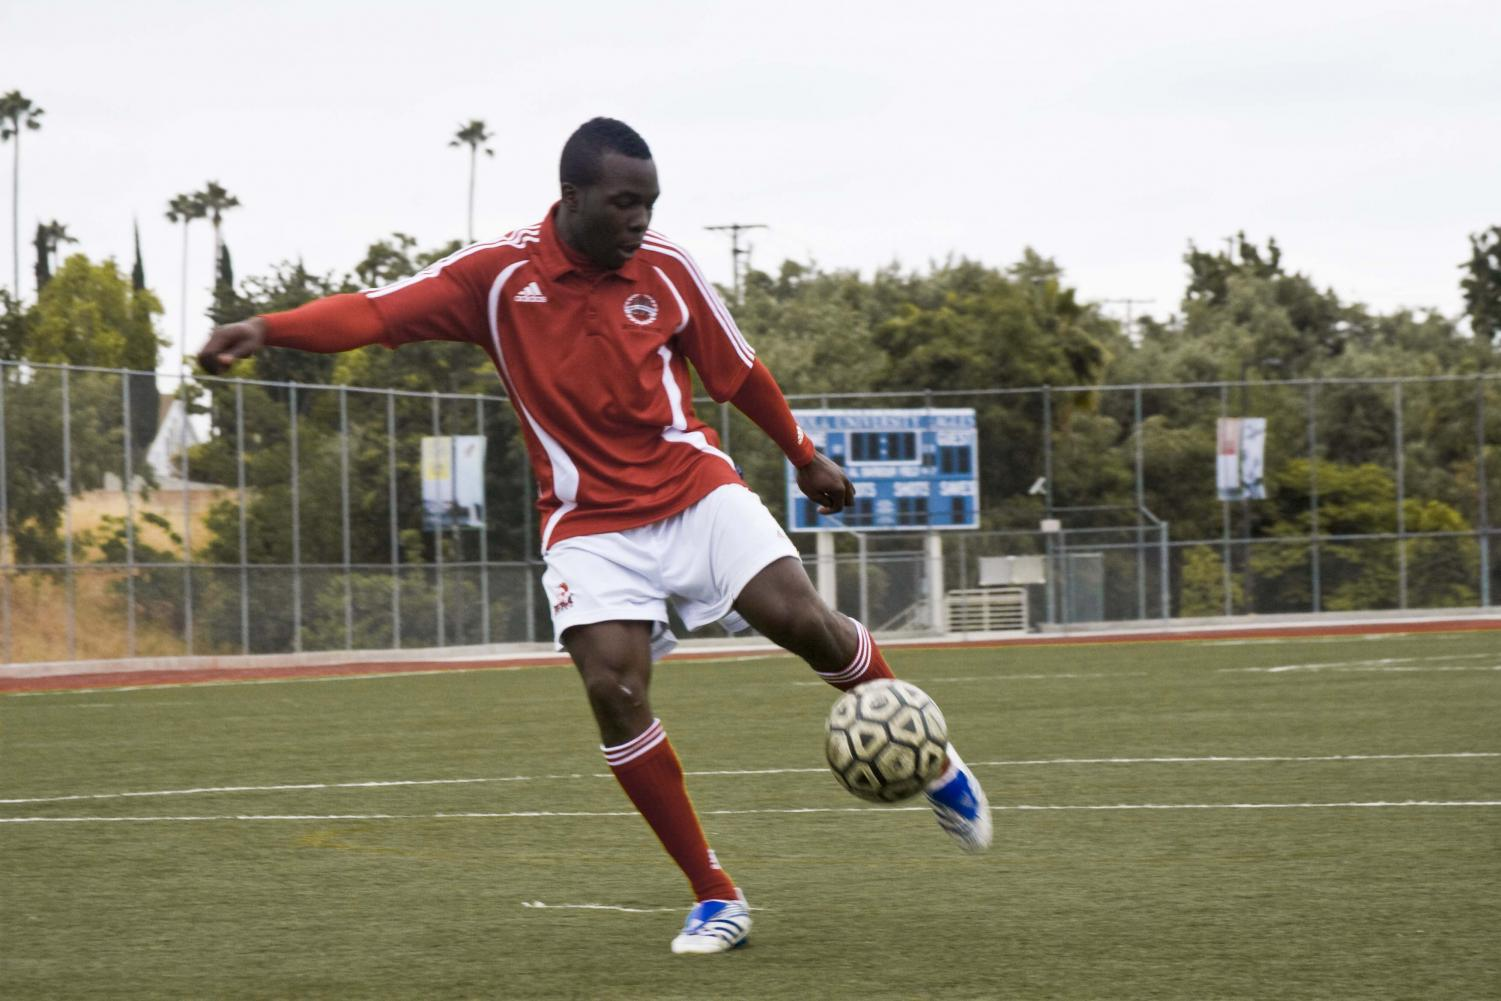 Sophomore Shalom Bako, a forward on Biola's soccer team, has recently been accepted to join the Young Los Angeles Galaxy soccer team.